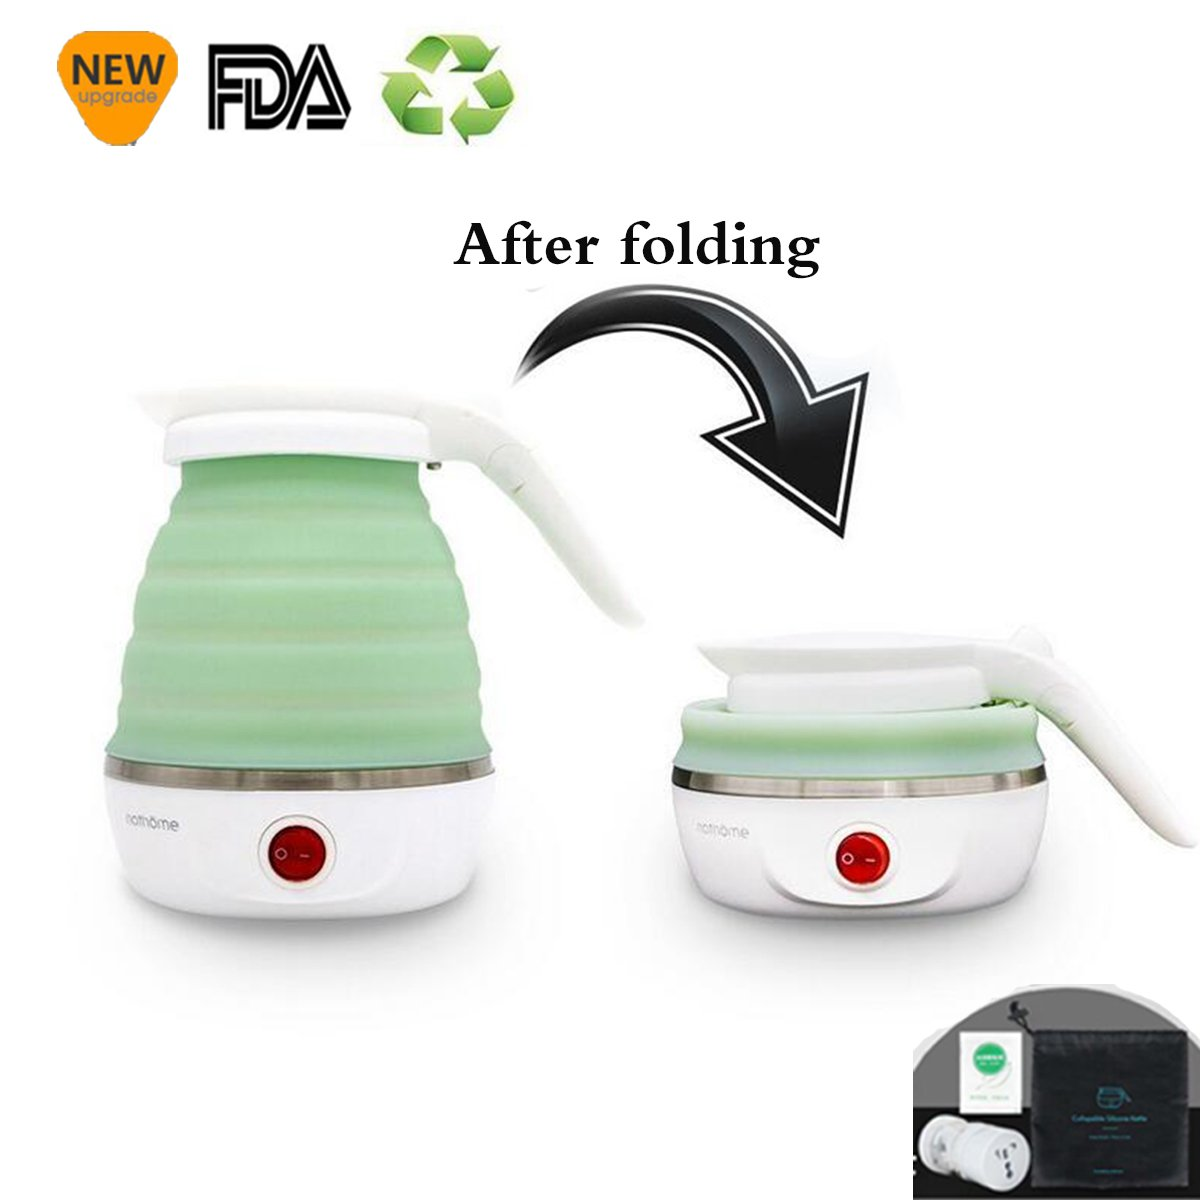 TQ@- Travel/Home Foldable Electric Kettle - Dual Voltage - Food Grade Silicone - Collapses For Easy & Convenient Storage - Boil Dry Protection, 0.6L - 100/120V & 220/240V -Green,Green CVCVBVHV BB